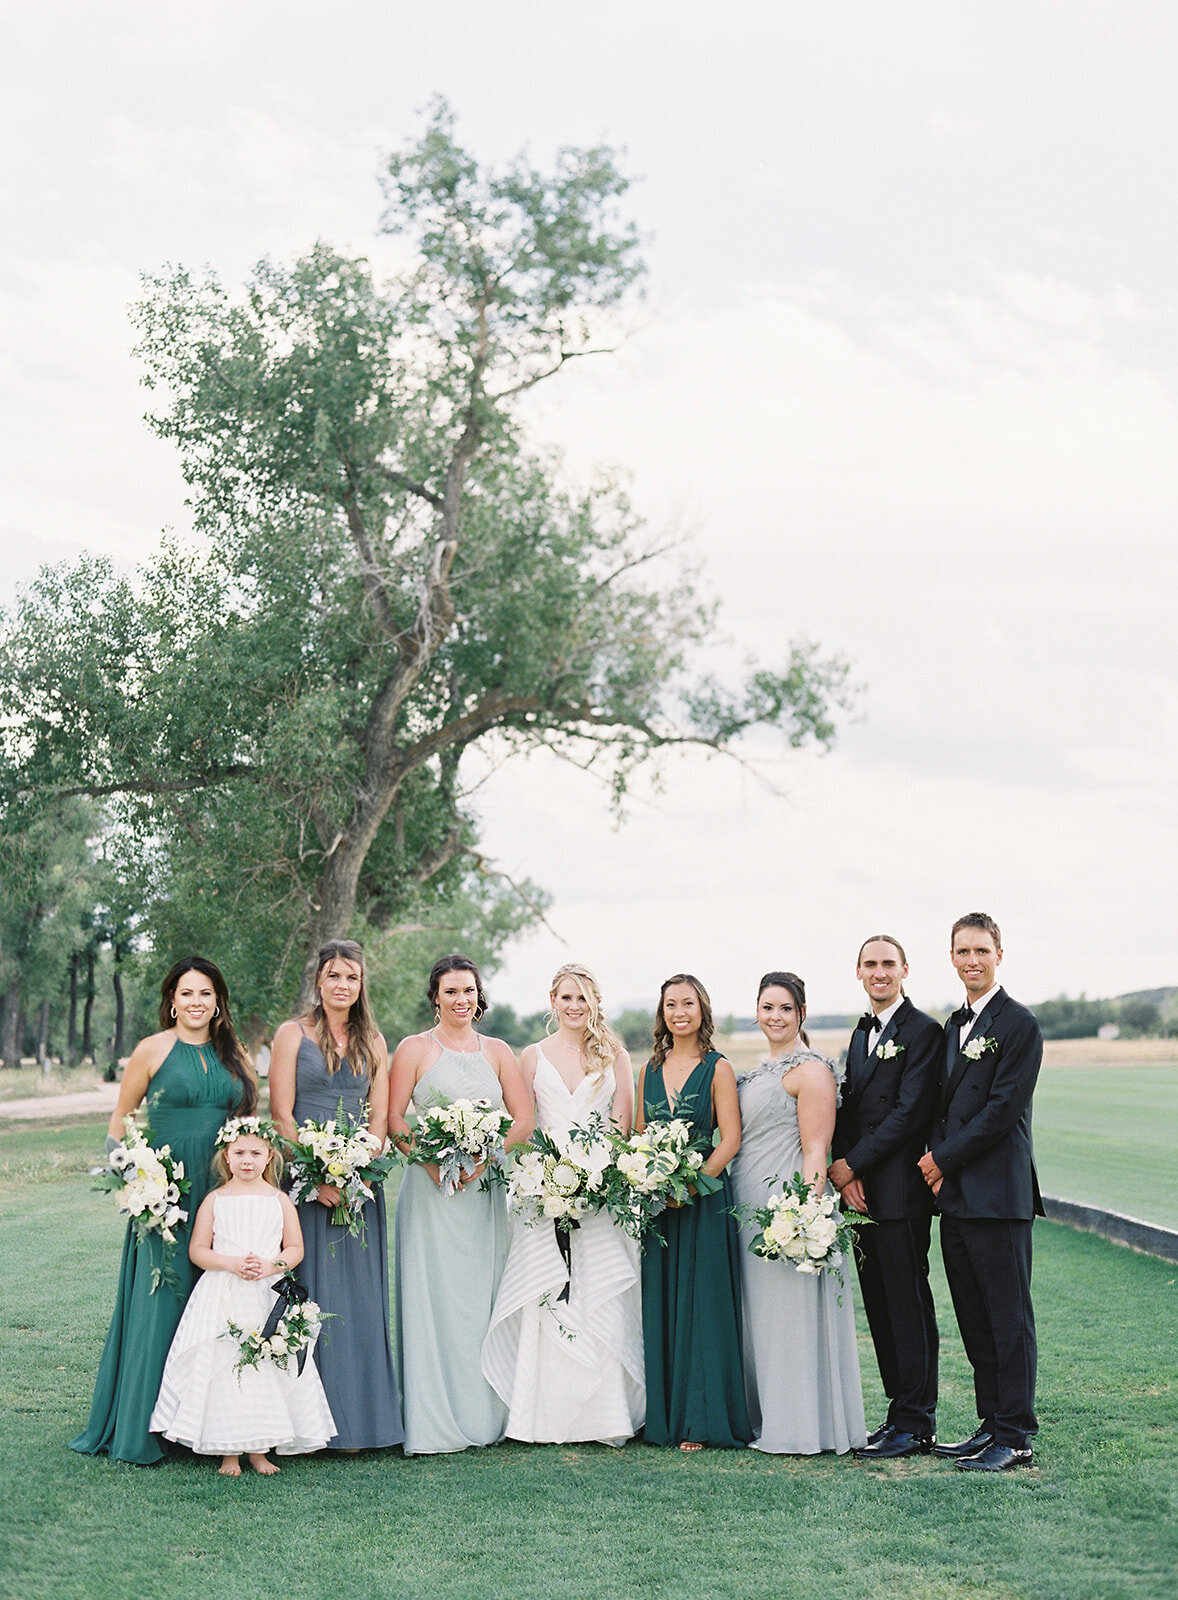 Melissa and Garrison-Wedding-Carrie King Photographer-669